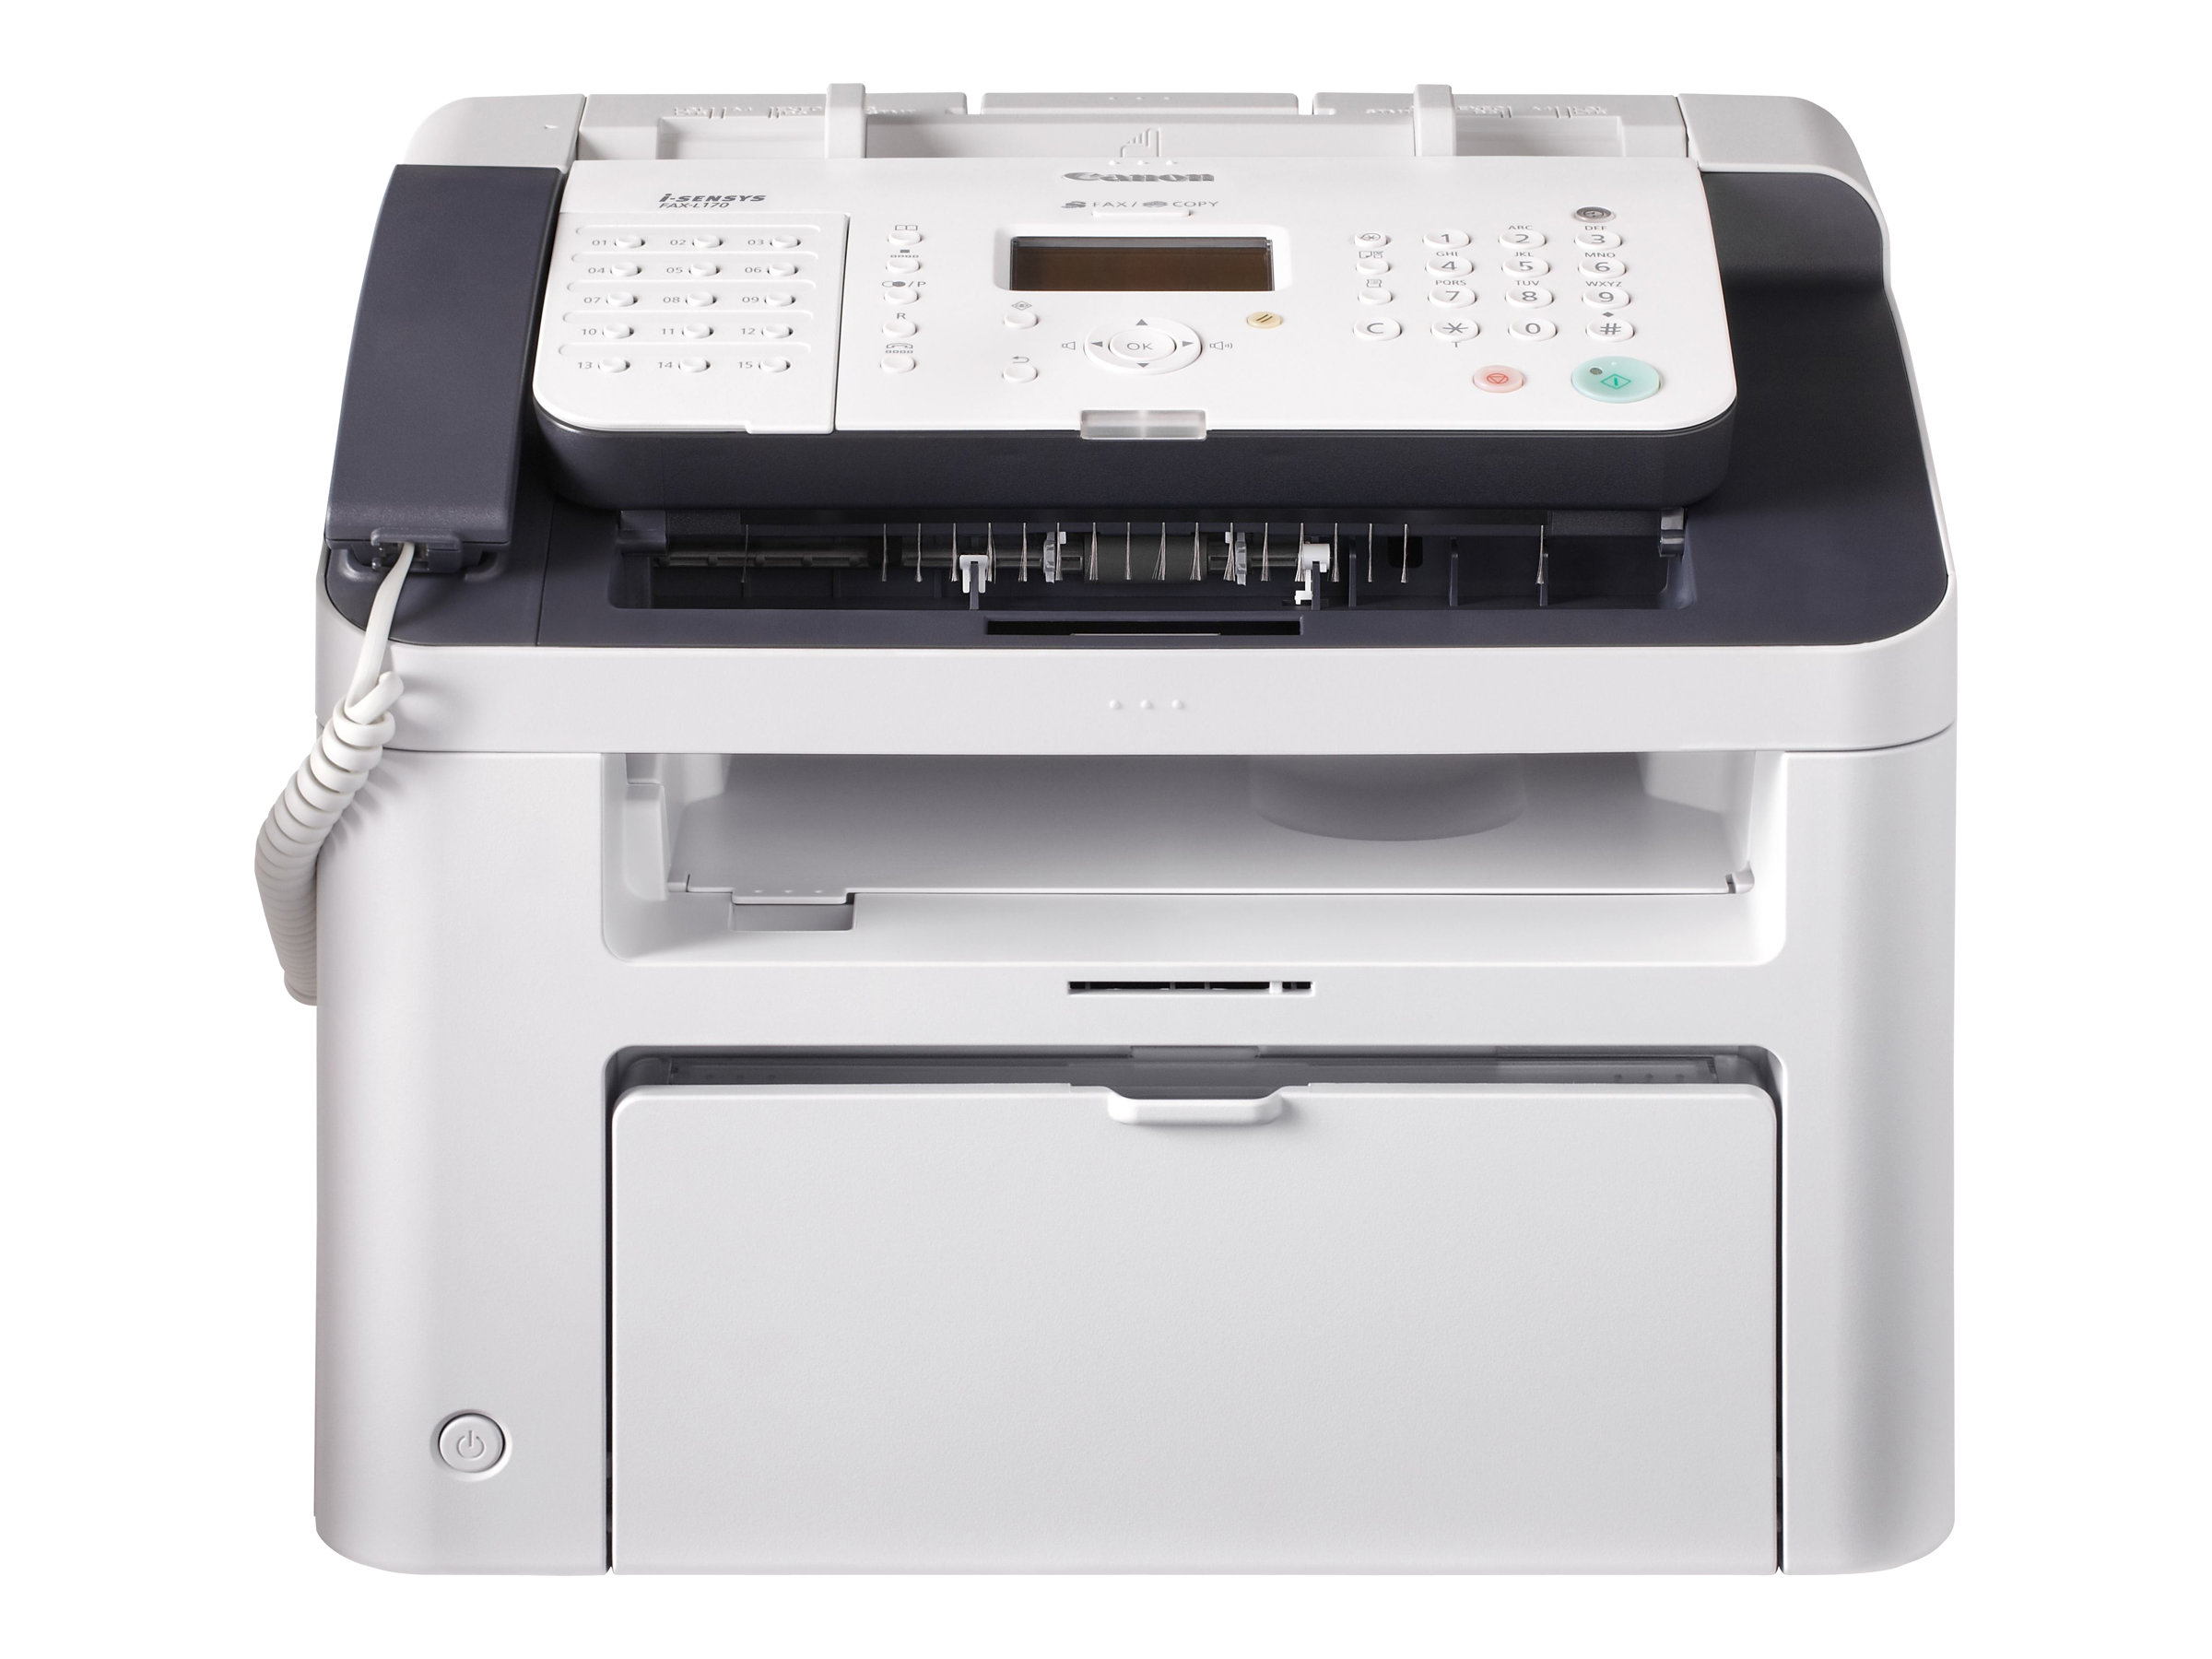 Canon i-SENSYS FAX-L170 - Multifunktionsdrucker - s/w - Laser - A4 (210 x 297 mm), Legal (216 x 356 mm) (Original) - A4/Legal (Medien)